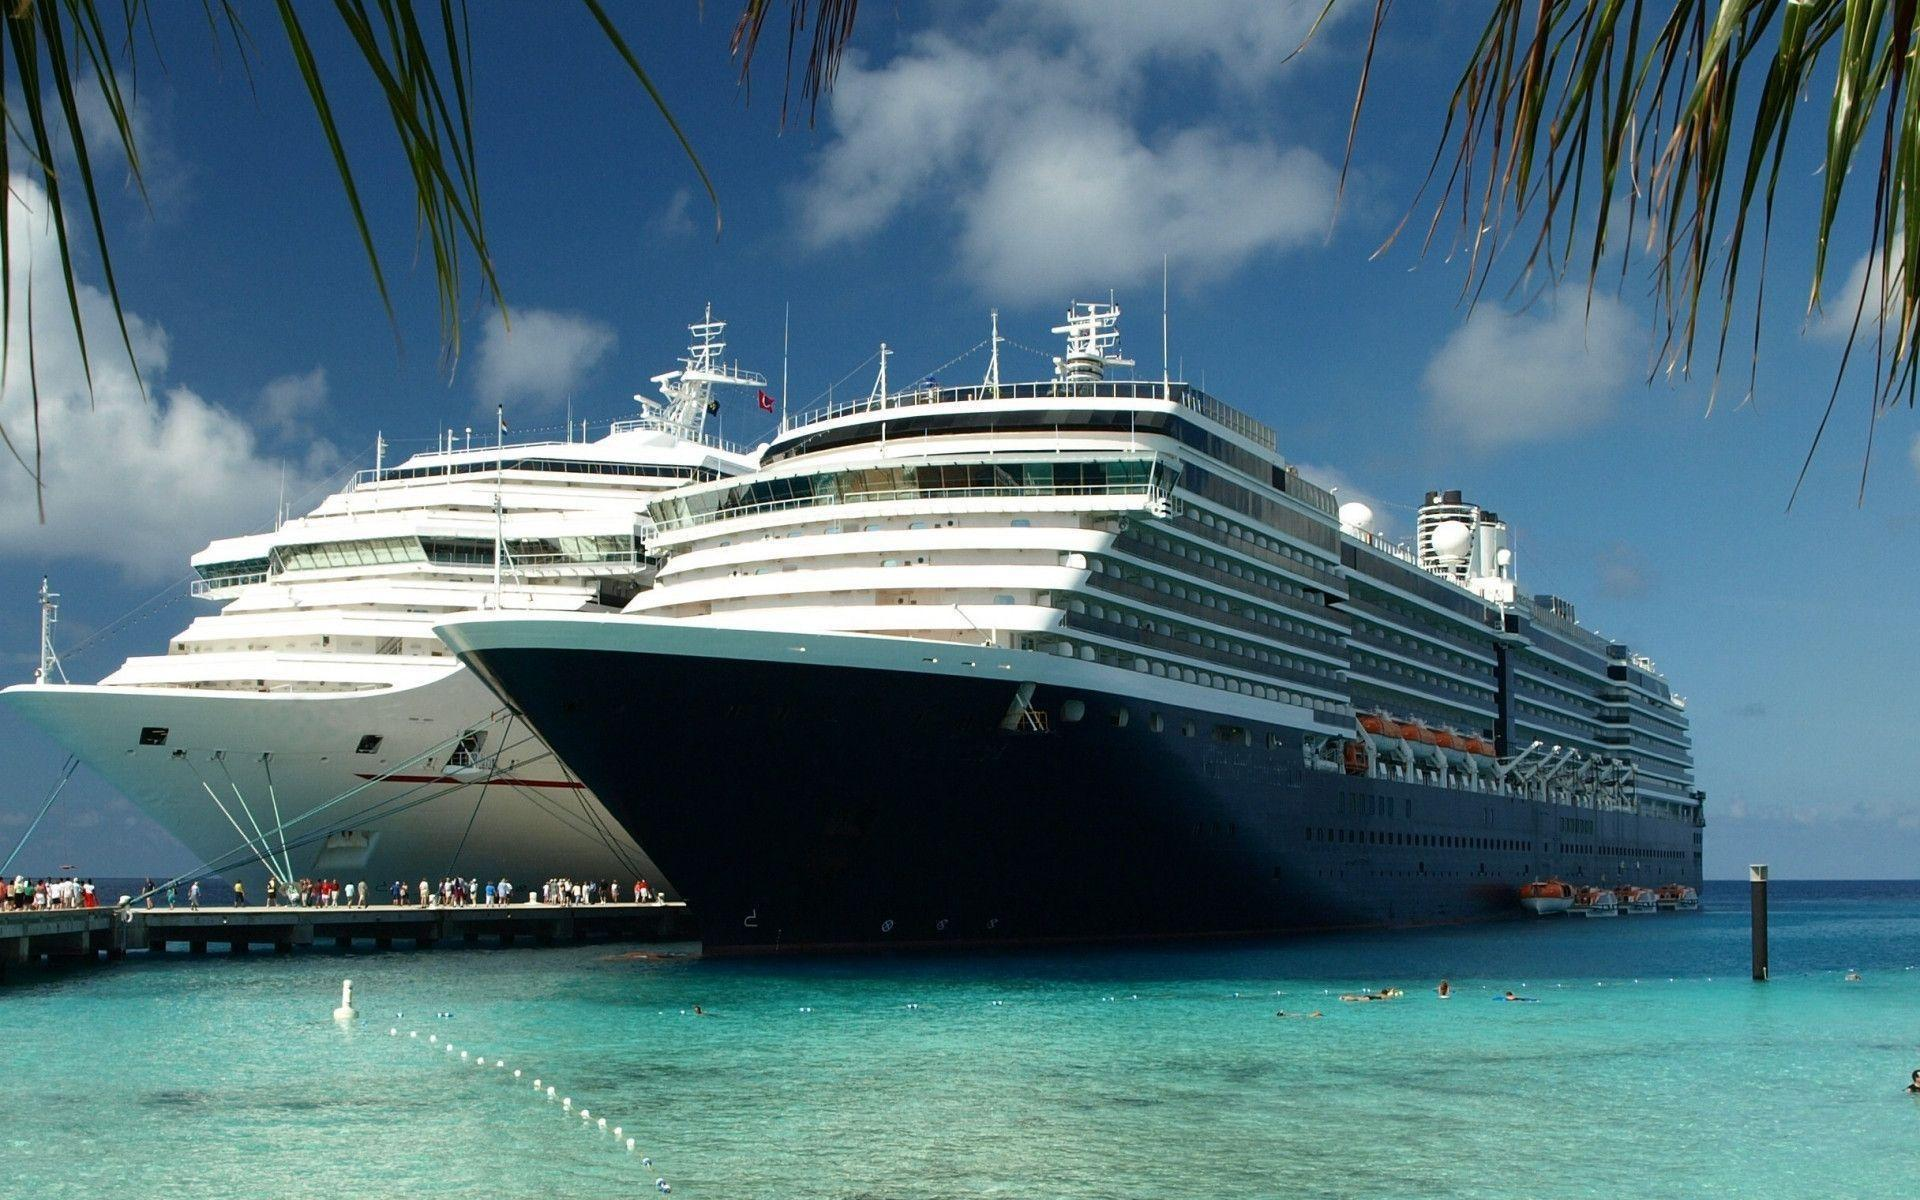 123 Cruise Ship Wallpapers | Cruise Ship Backgrounds